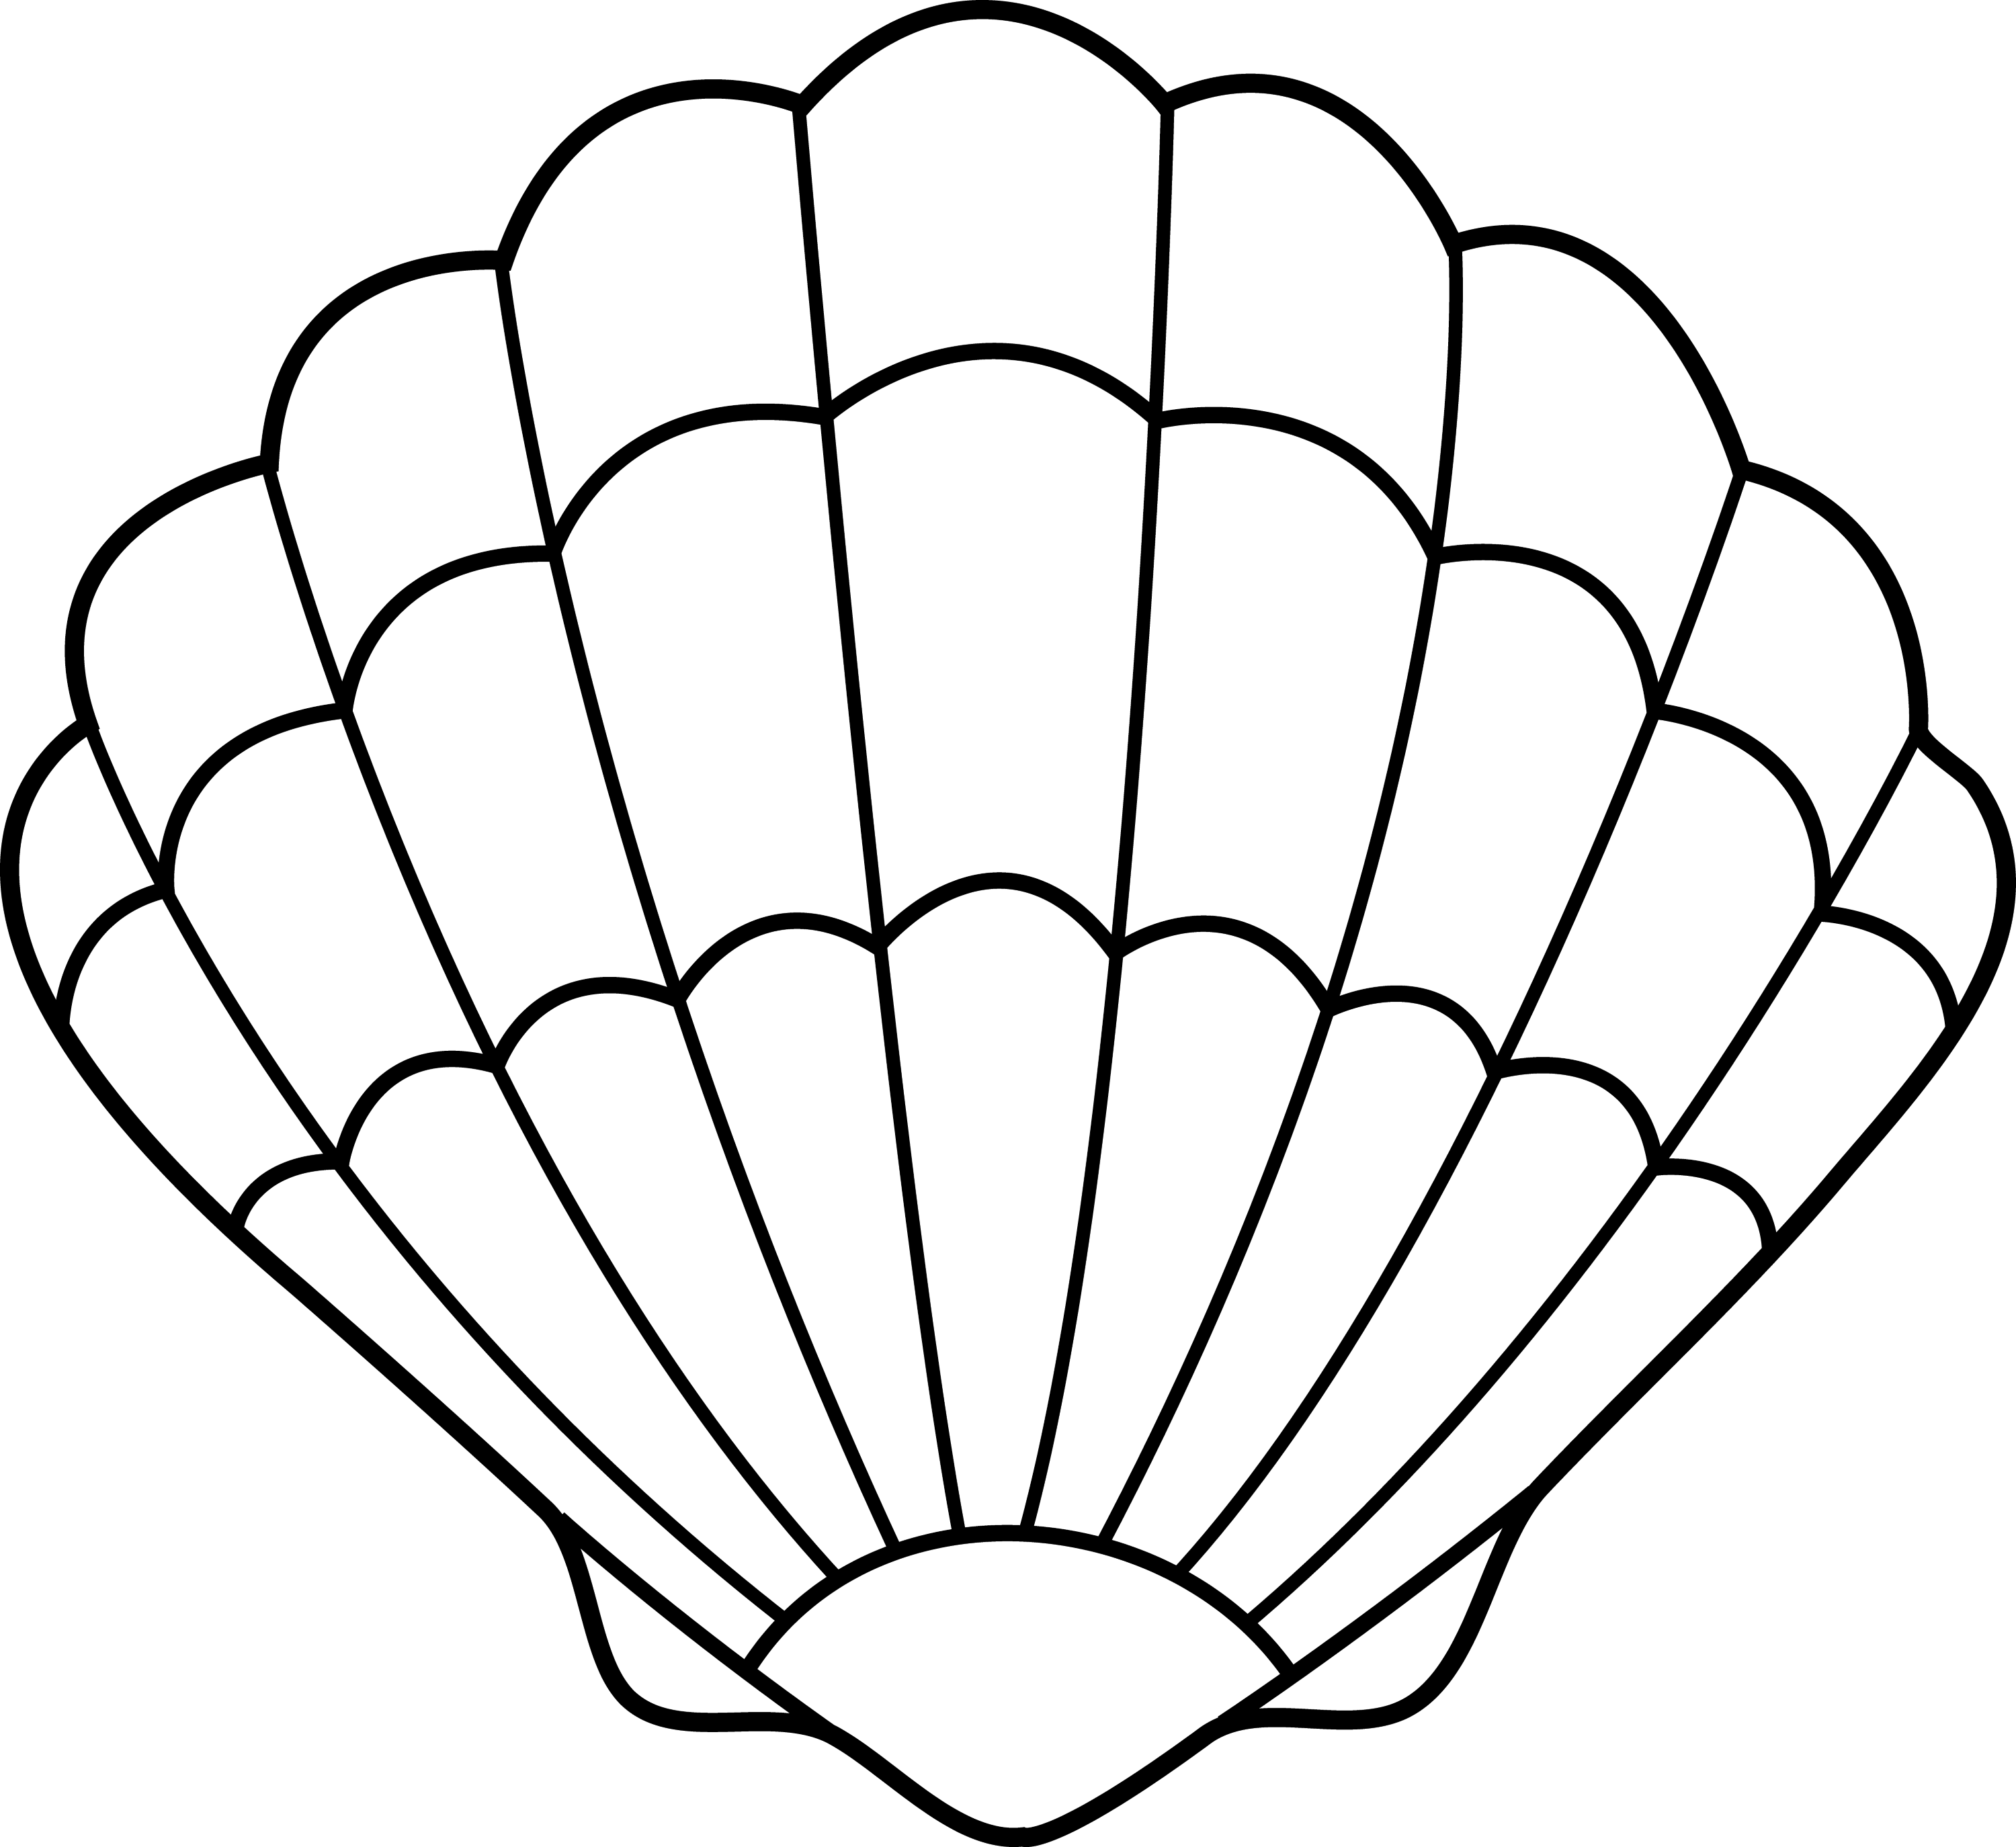 Clipart Clam Shell Images & Pictures - Becuo